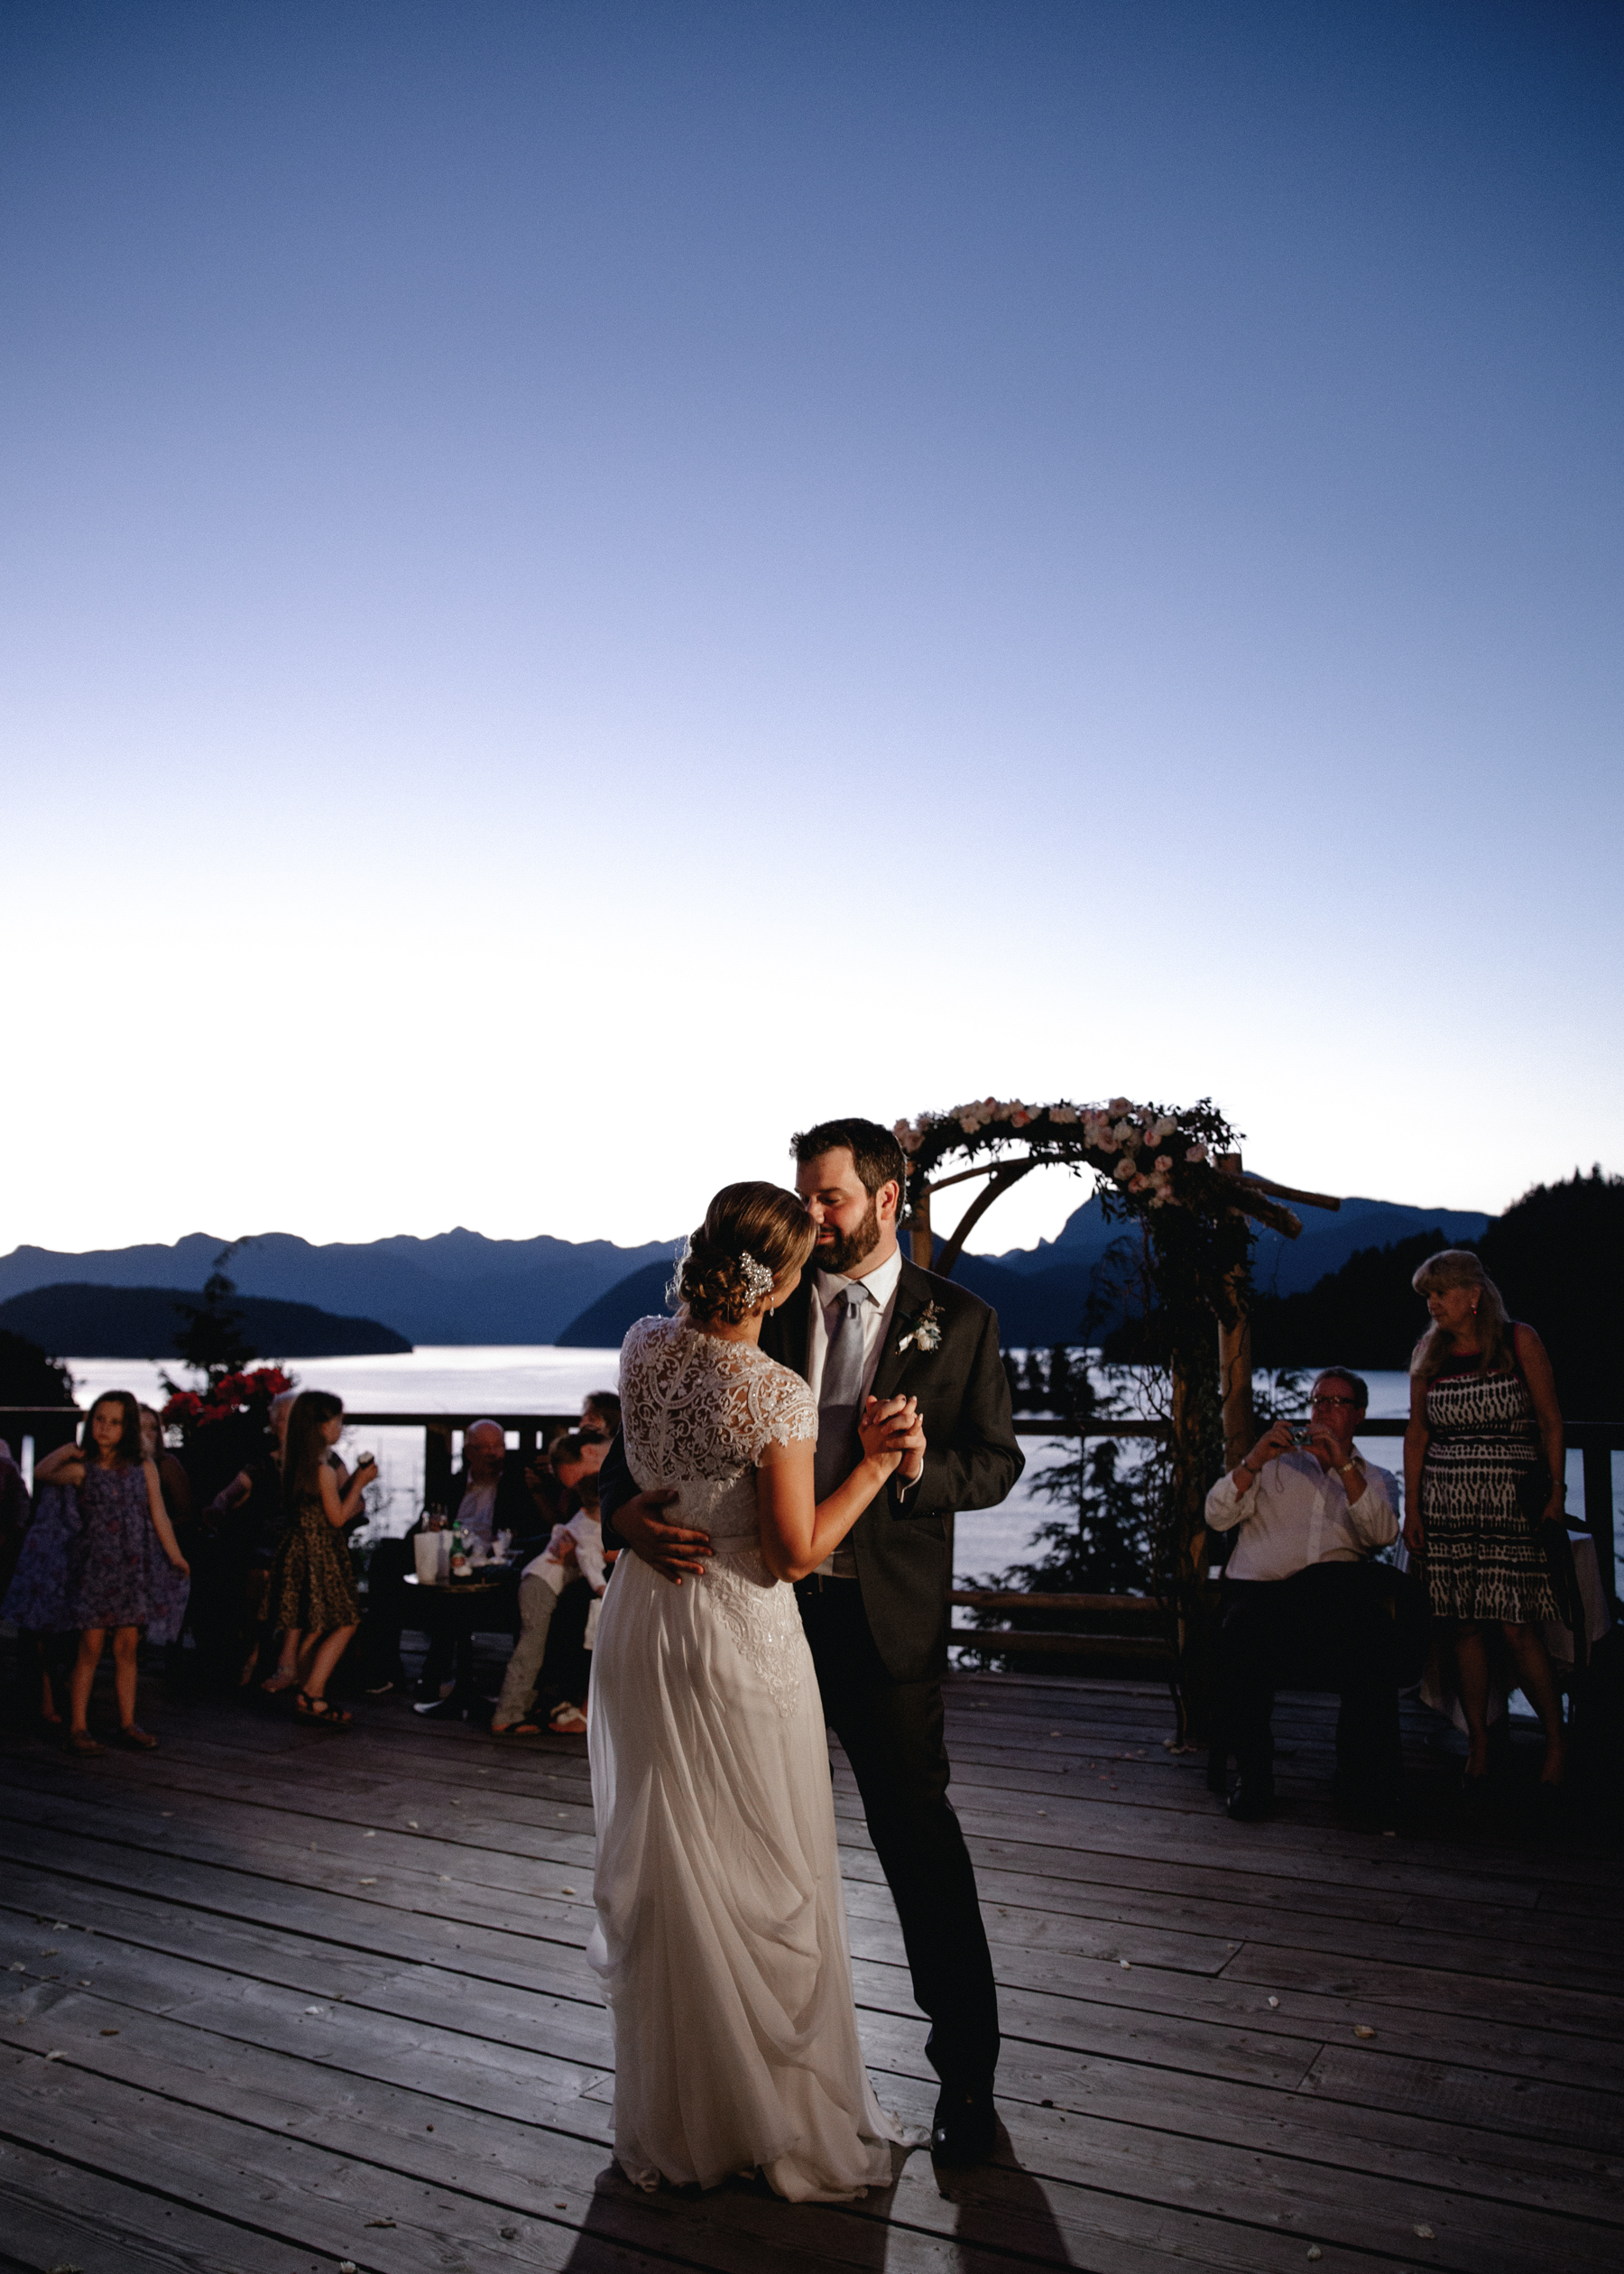 kaoverii_silva_photographer_via_herafilms_jacquie_dave_wedding-37.jpg